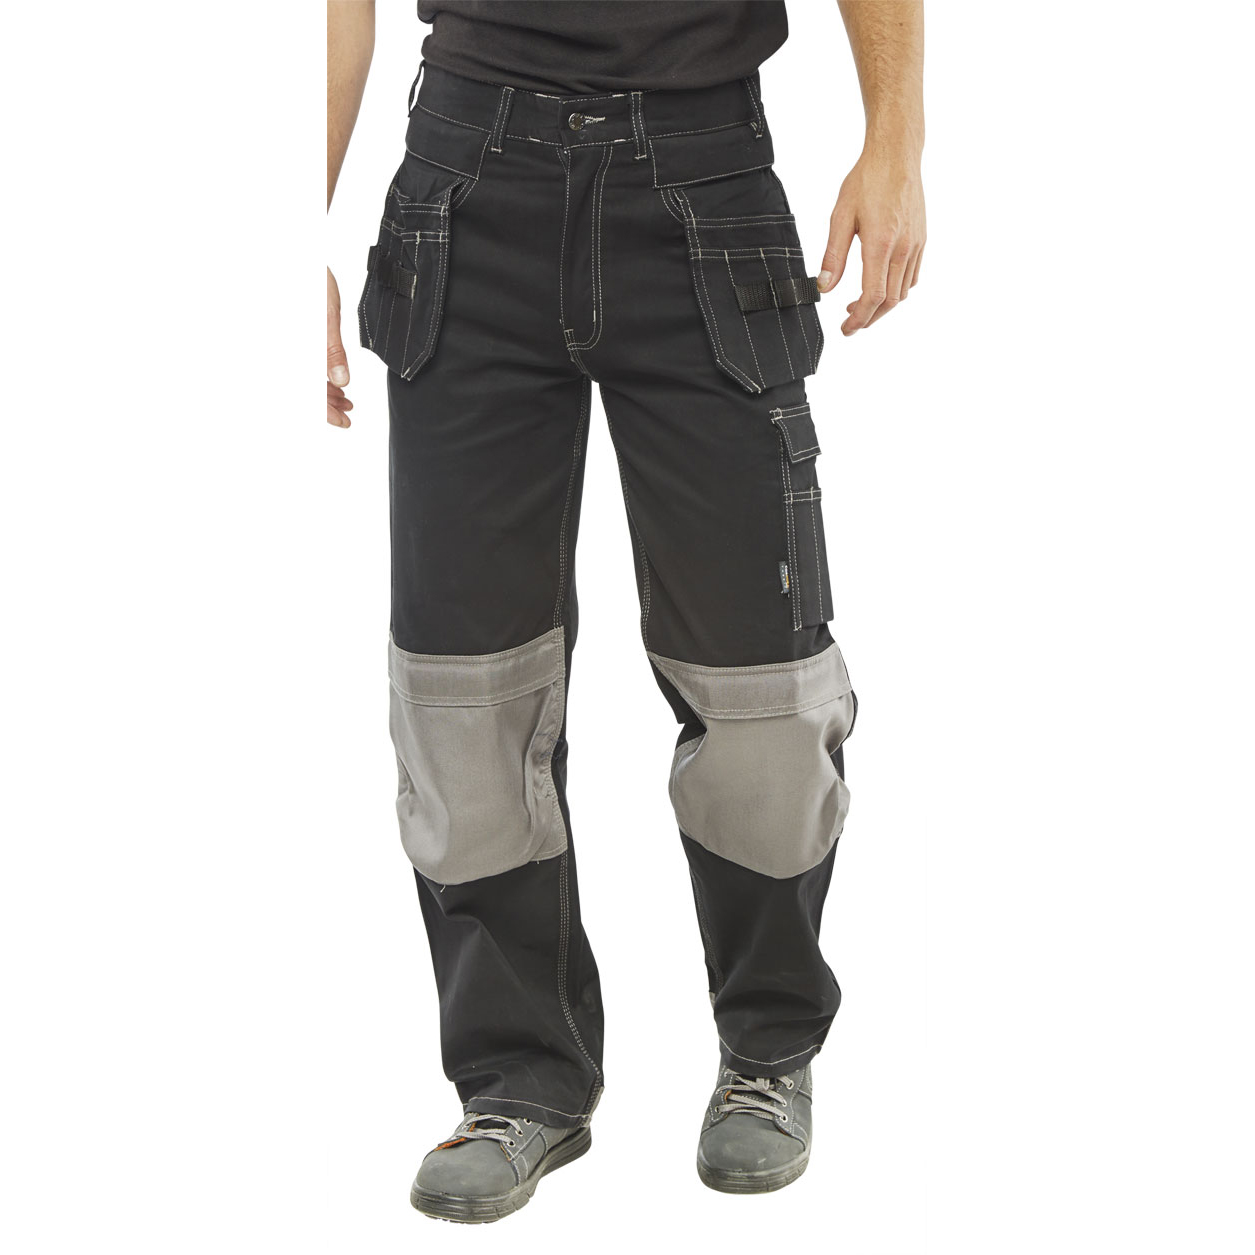 Click Workwear Kington Trousers Multipurpose Pockets Black 40 Long Ref KMPTBL40T Up to 3 Day Leadtime